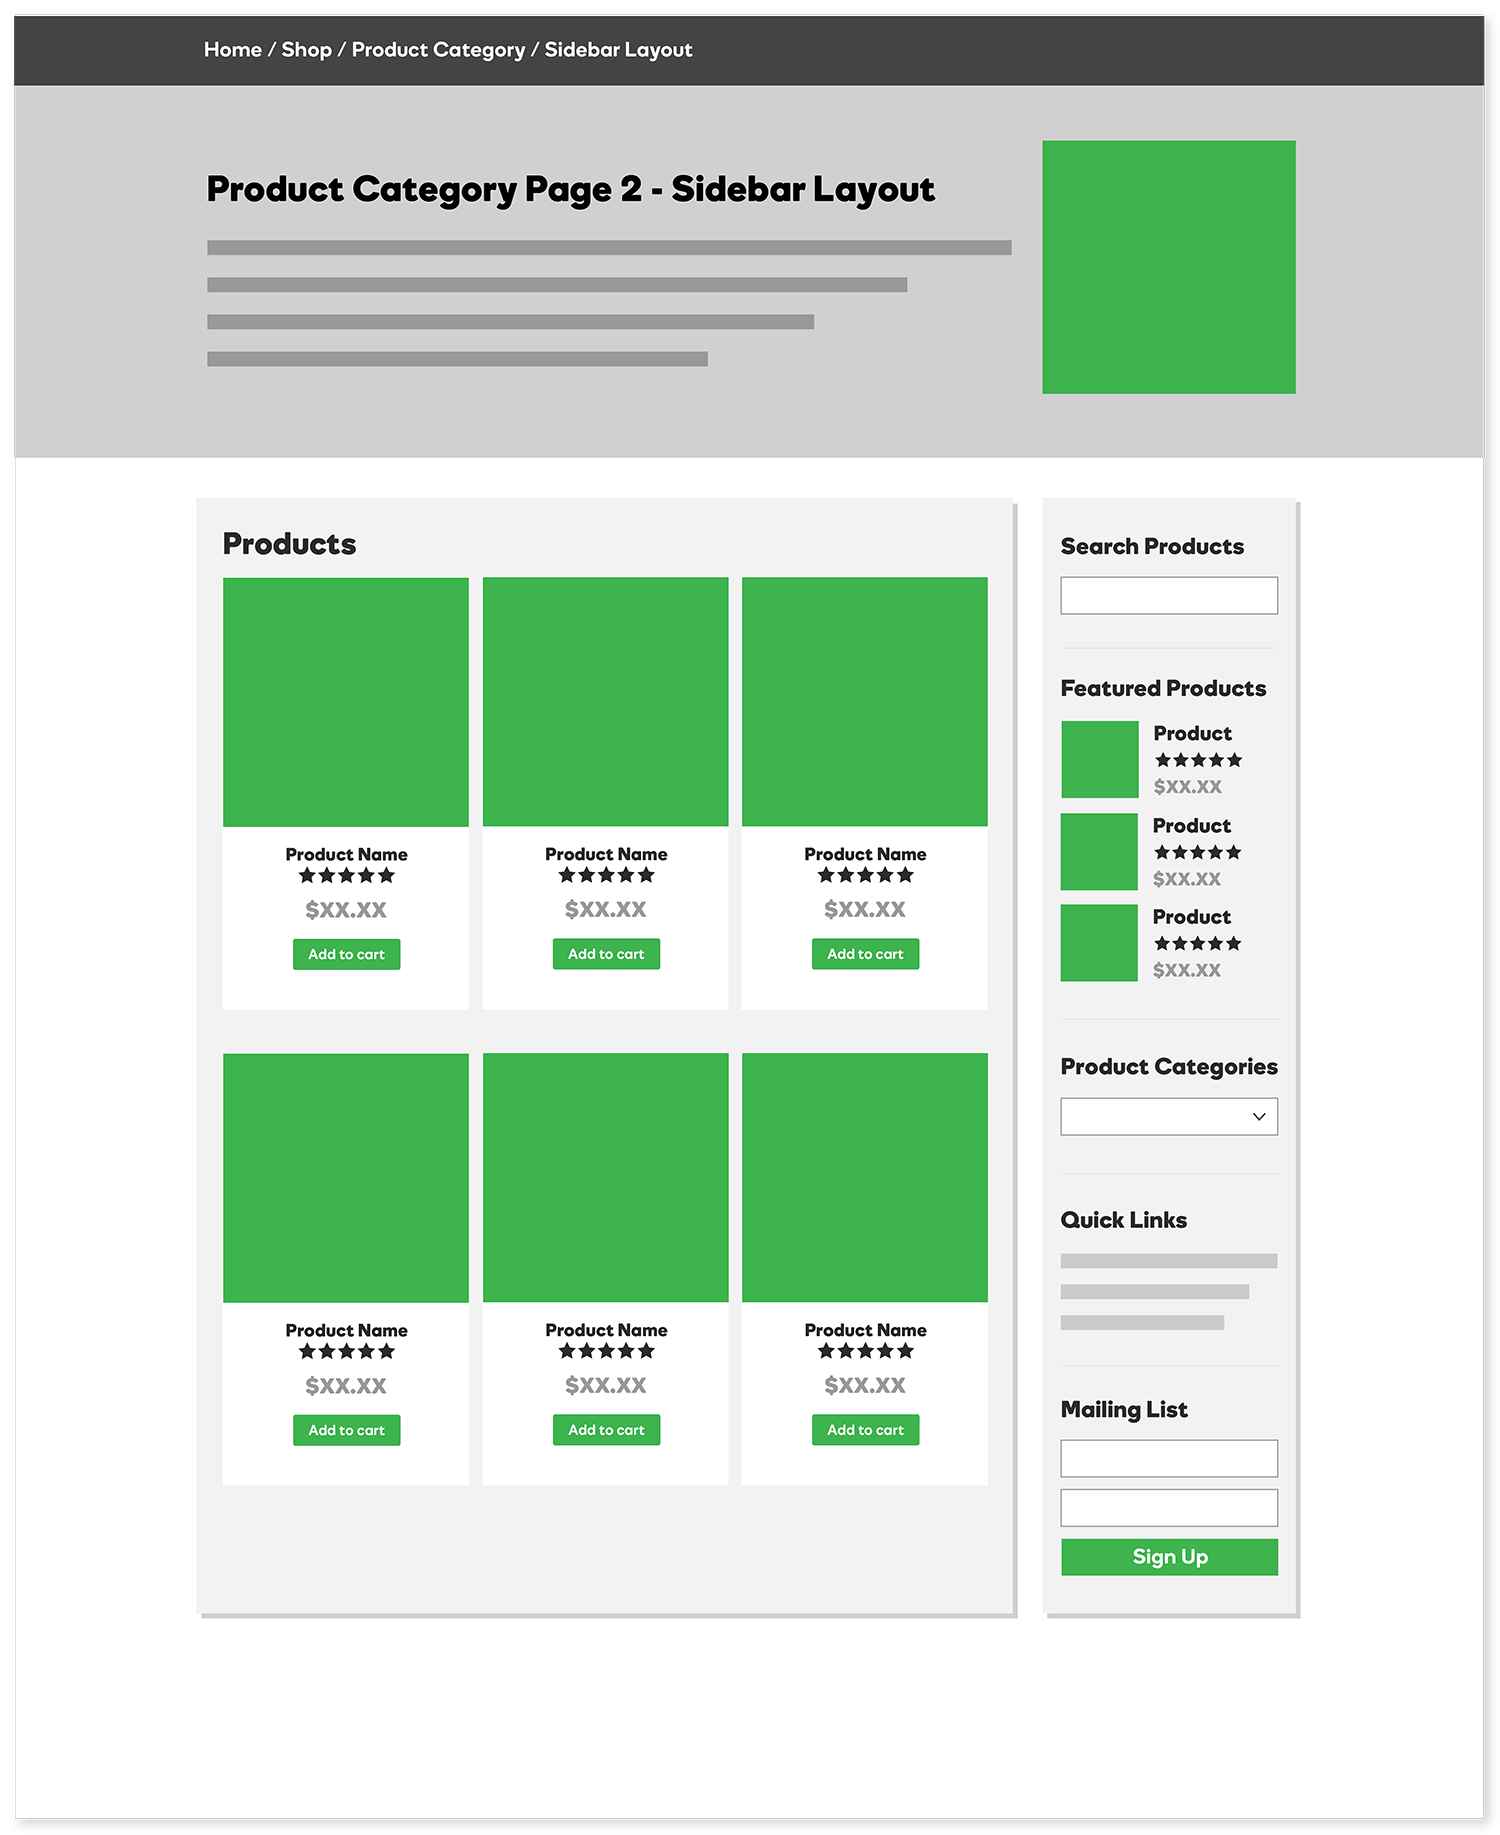 Product Category Page - Sidebar